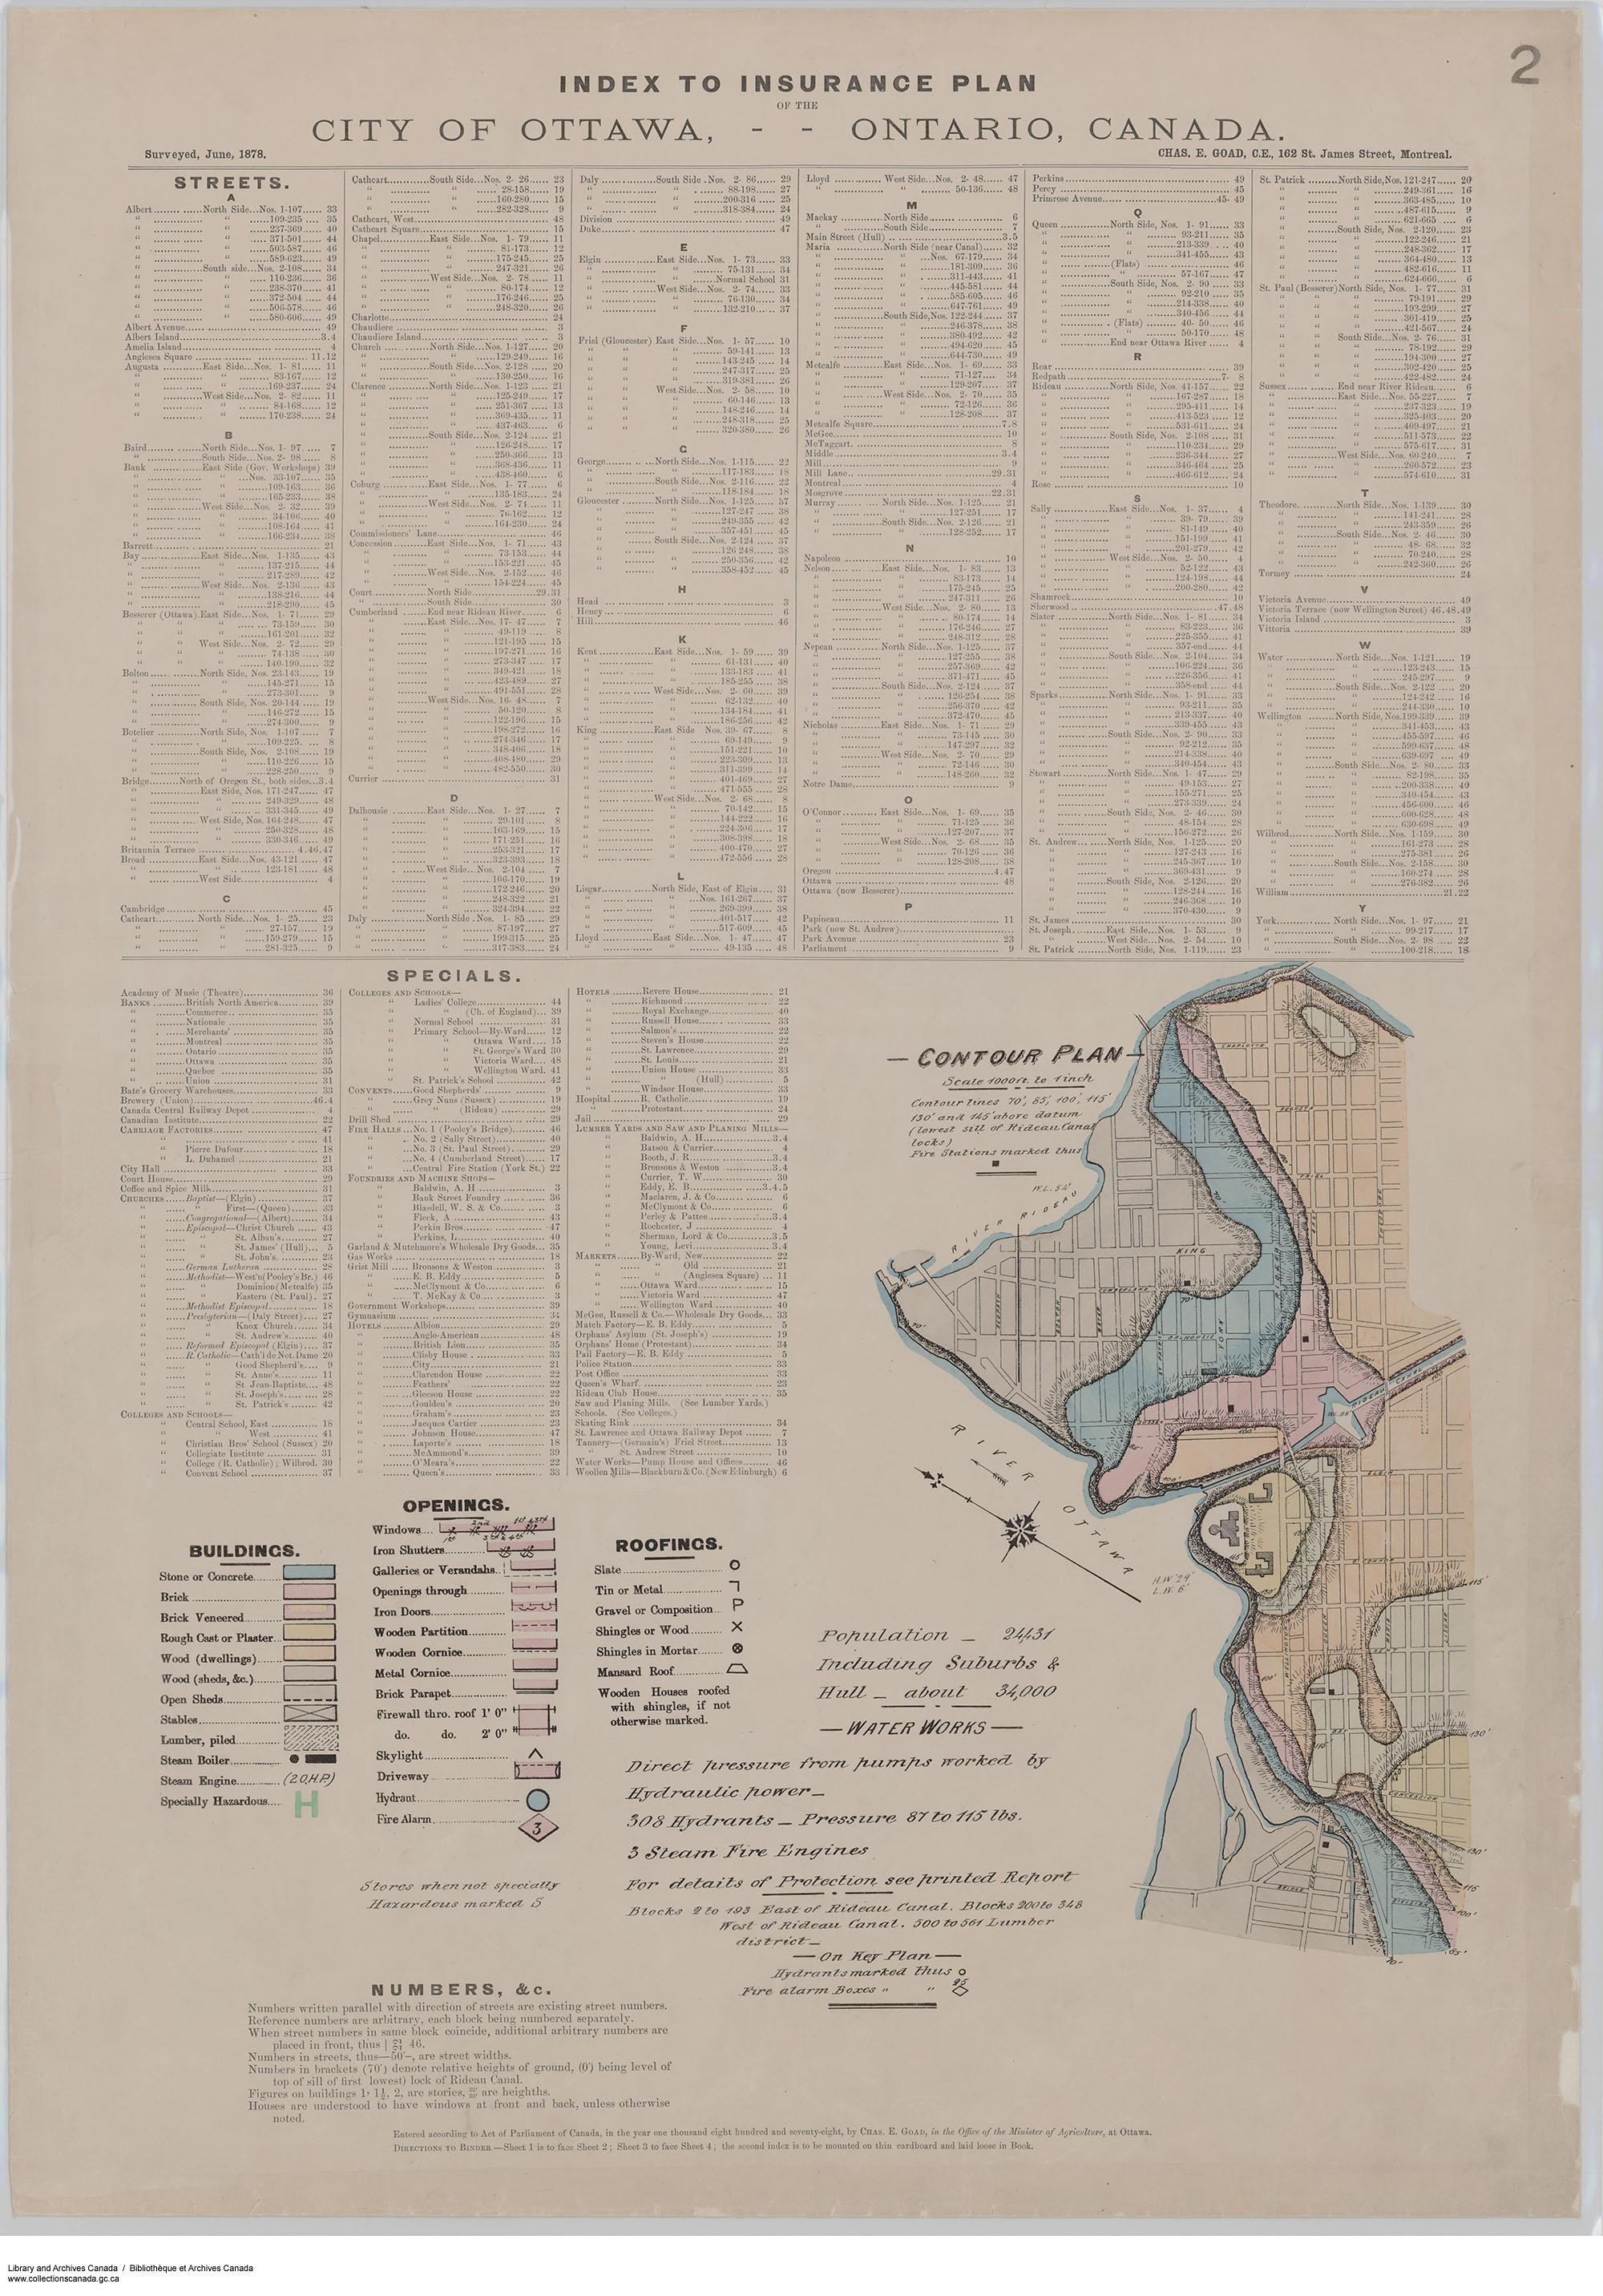 Sheet 2 - Index to streets and specials. Contour Plan. (item 2)